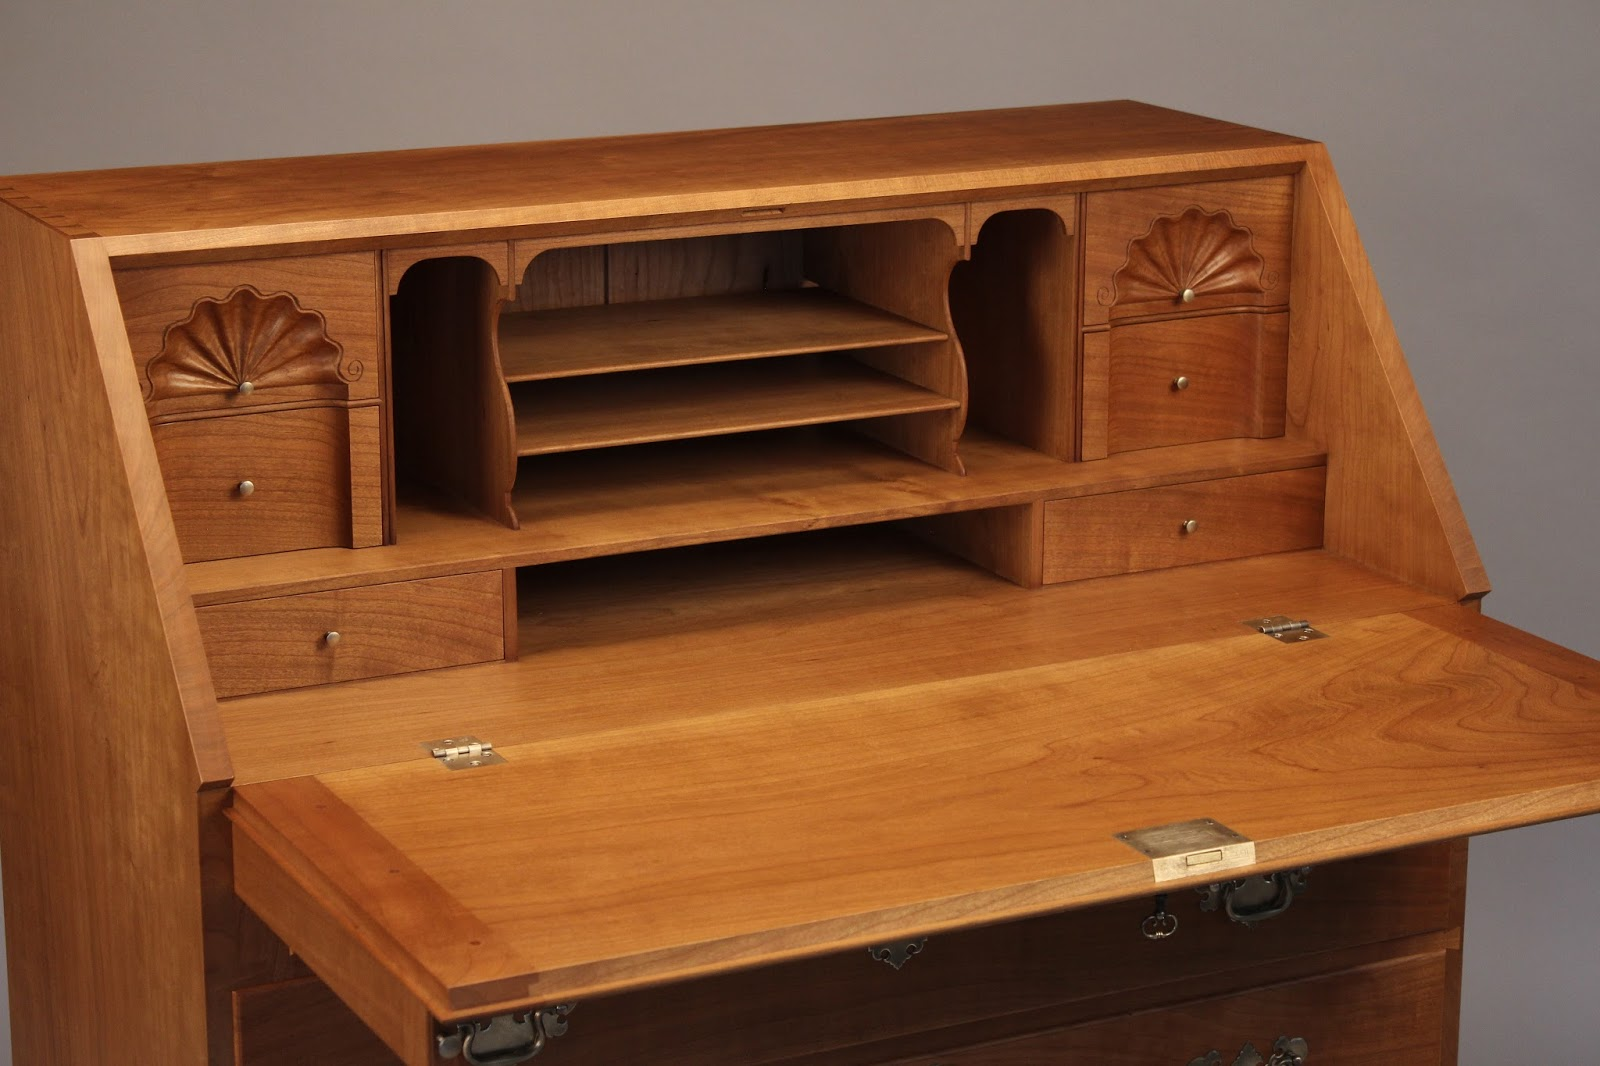 carved shells Newport Style desk